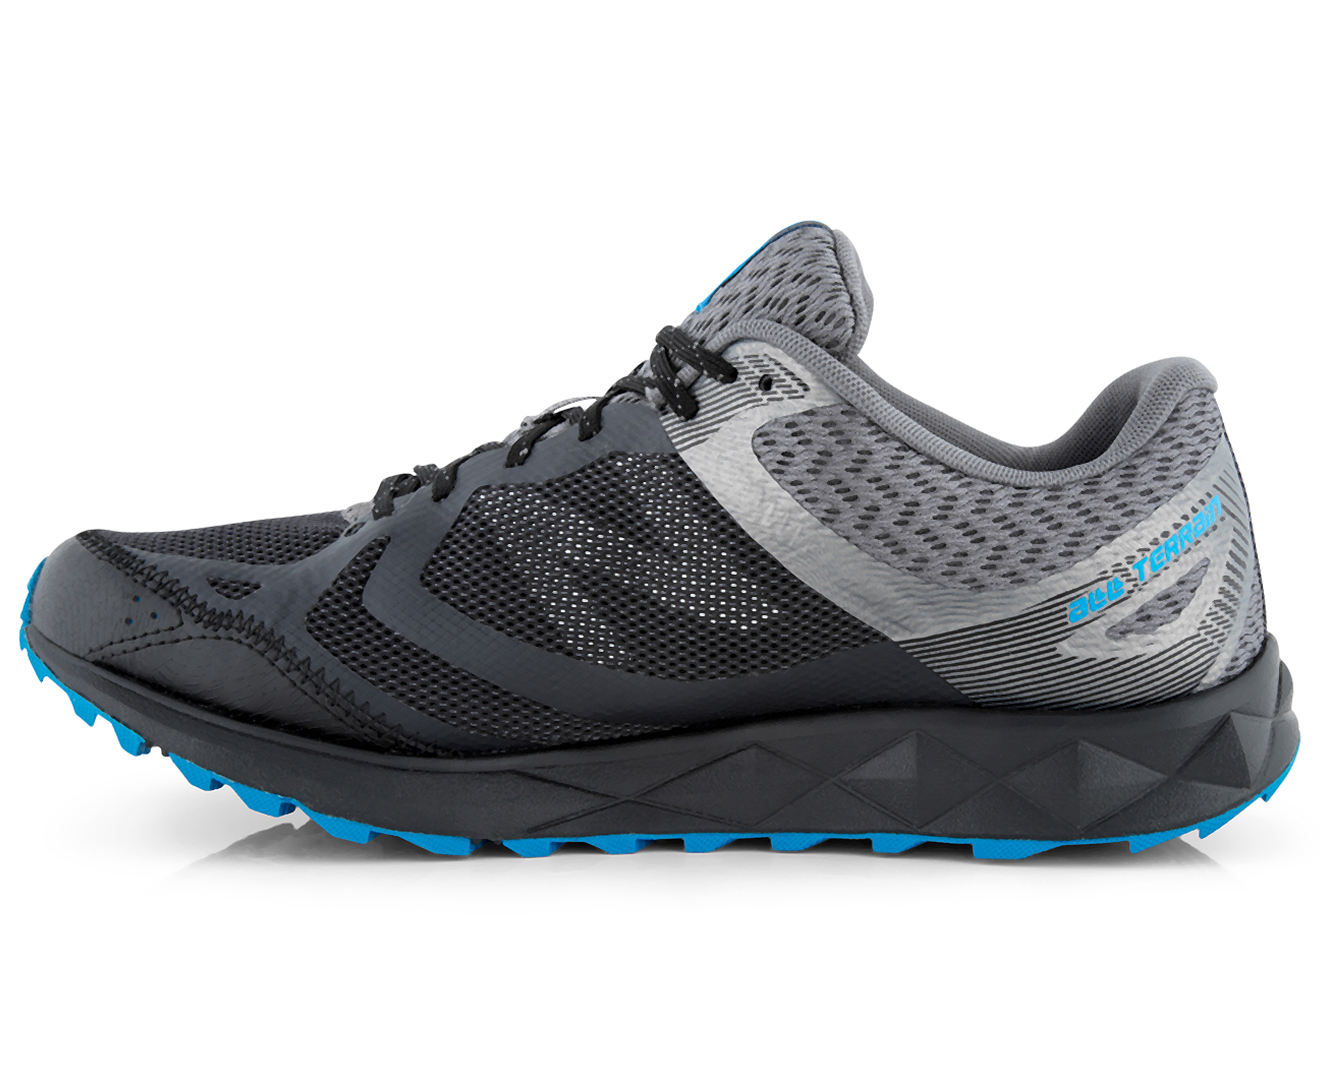 39d7fce4df13 New Balance Men s 590 V3 2E Wide Fit Trail Shoe - Black Castlerock Bolt